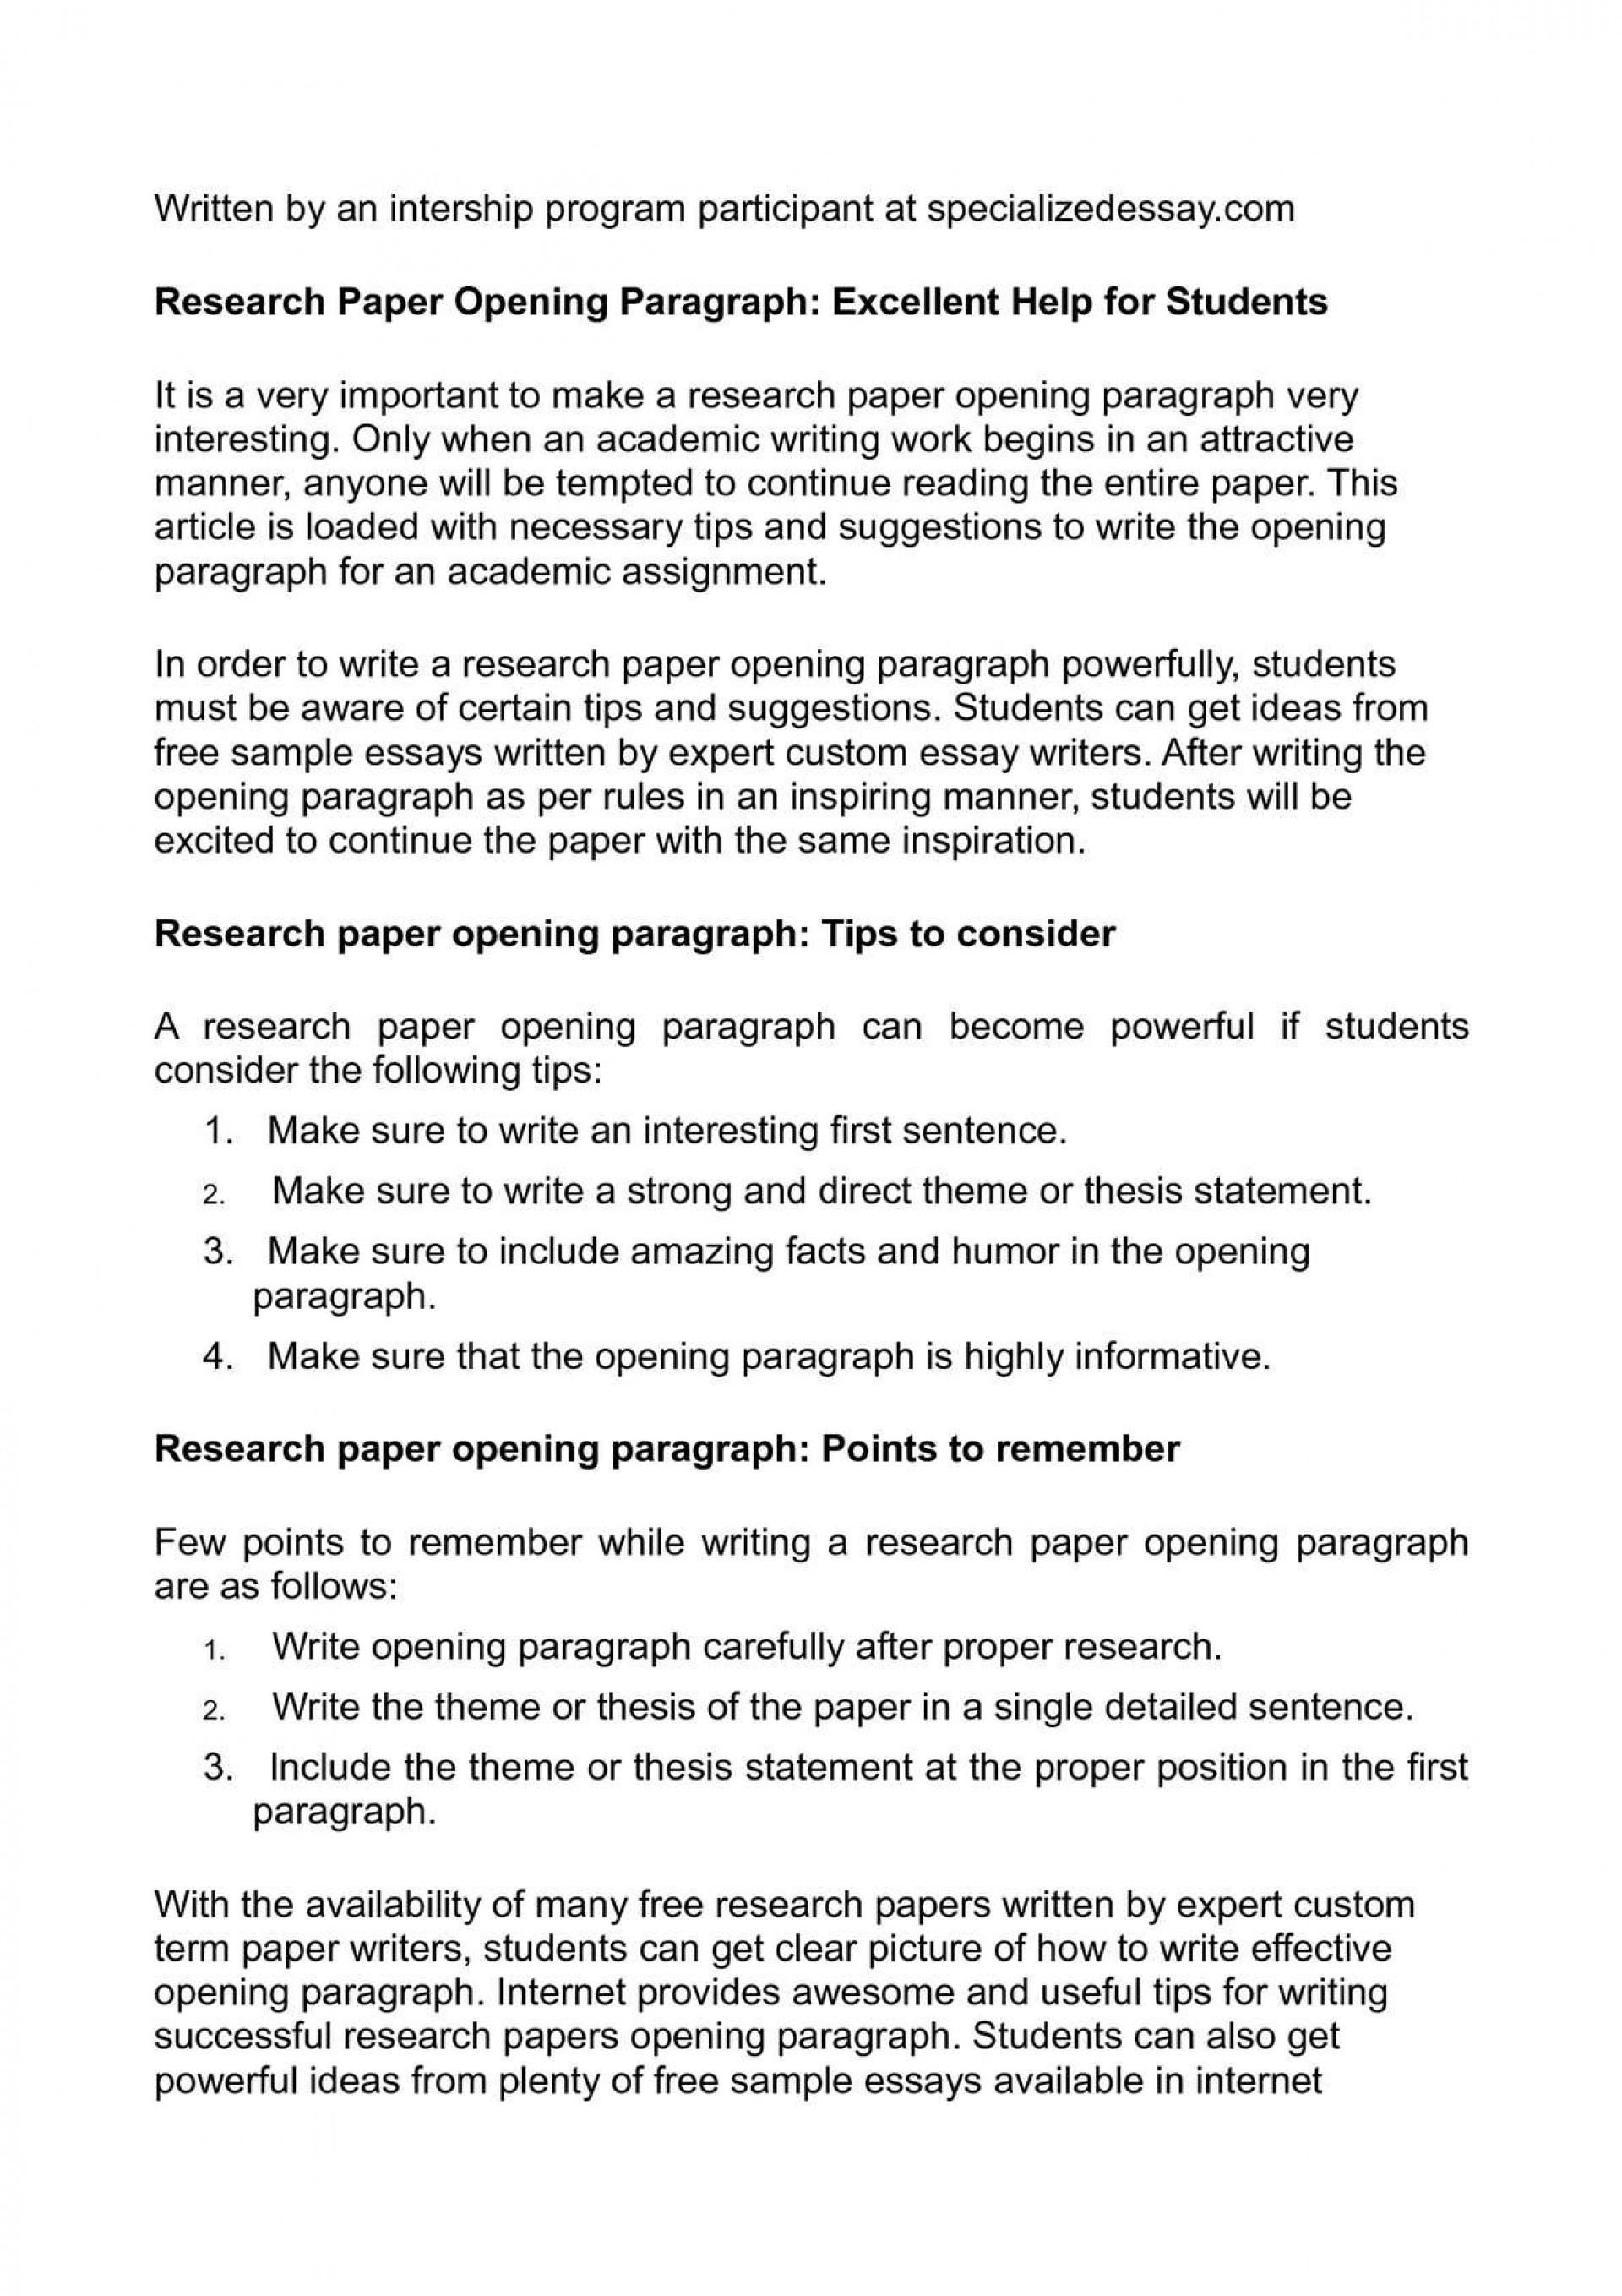 006 P1 How To Start Research Paper Frightening Paragraph Your First Body In A Conclusion 1920